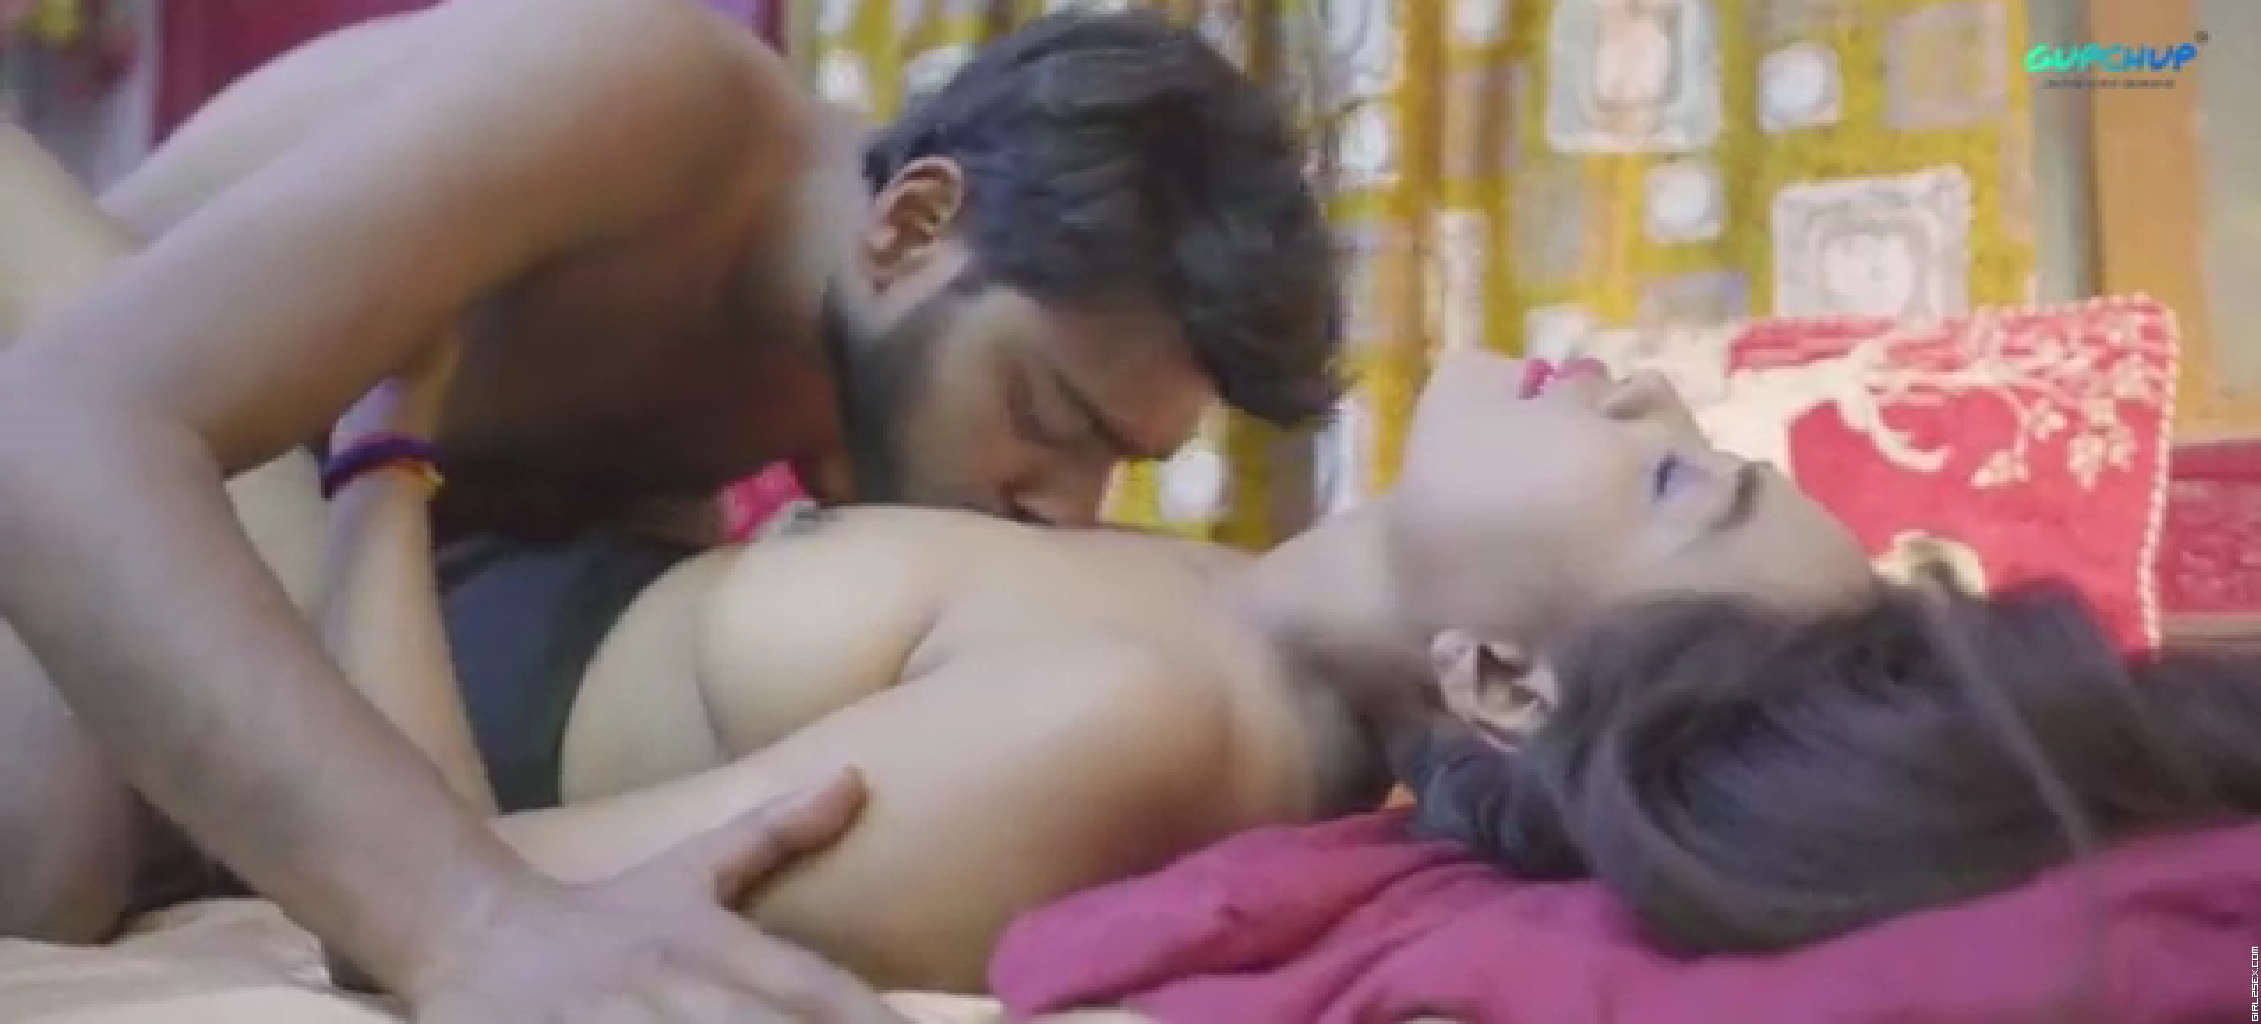 Phone Sex - GupChup Hindi Web Series S01E04.mp4